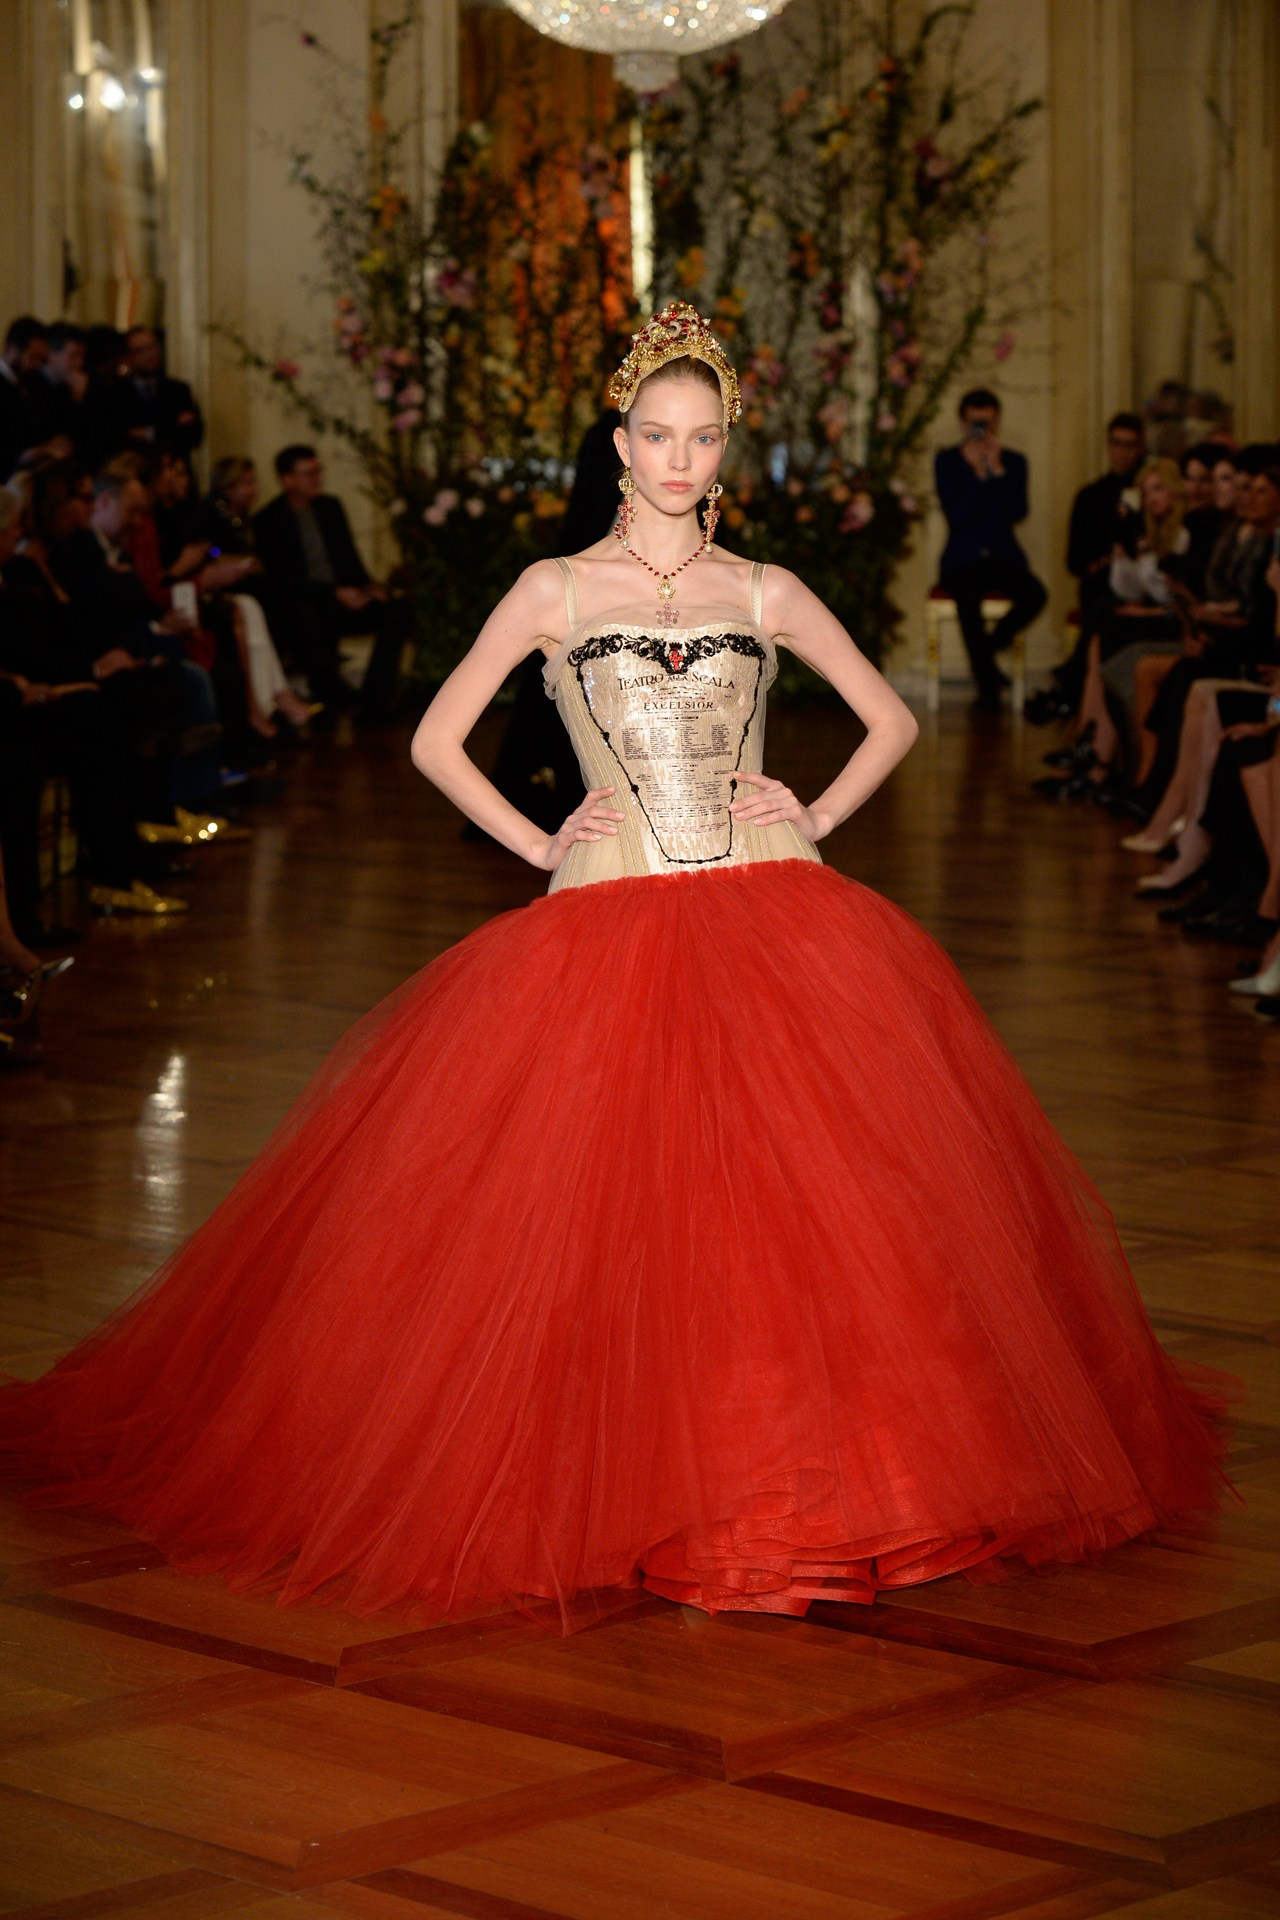 4-dolce-and-gabbana-alta-moda-show-at-milans-teatro-alla-scala---credit-dolce-and-gabbana.jpg